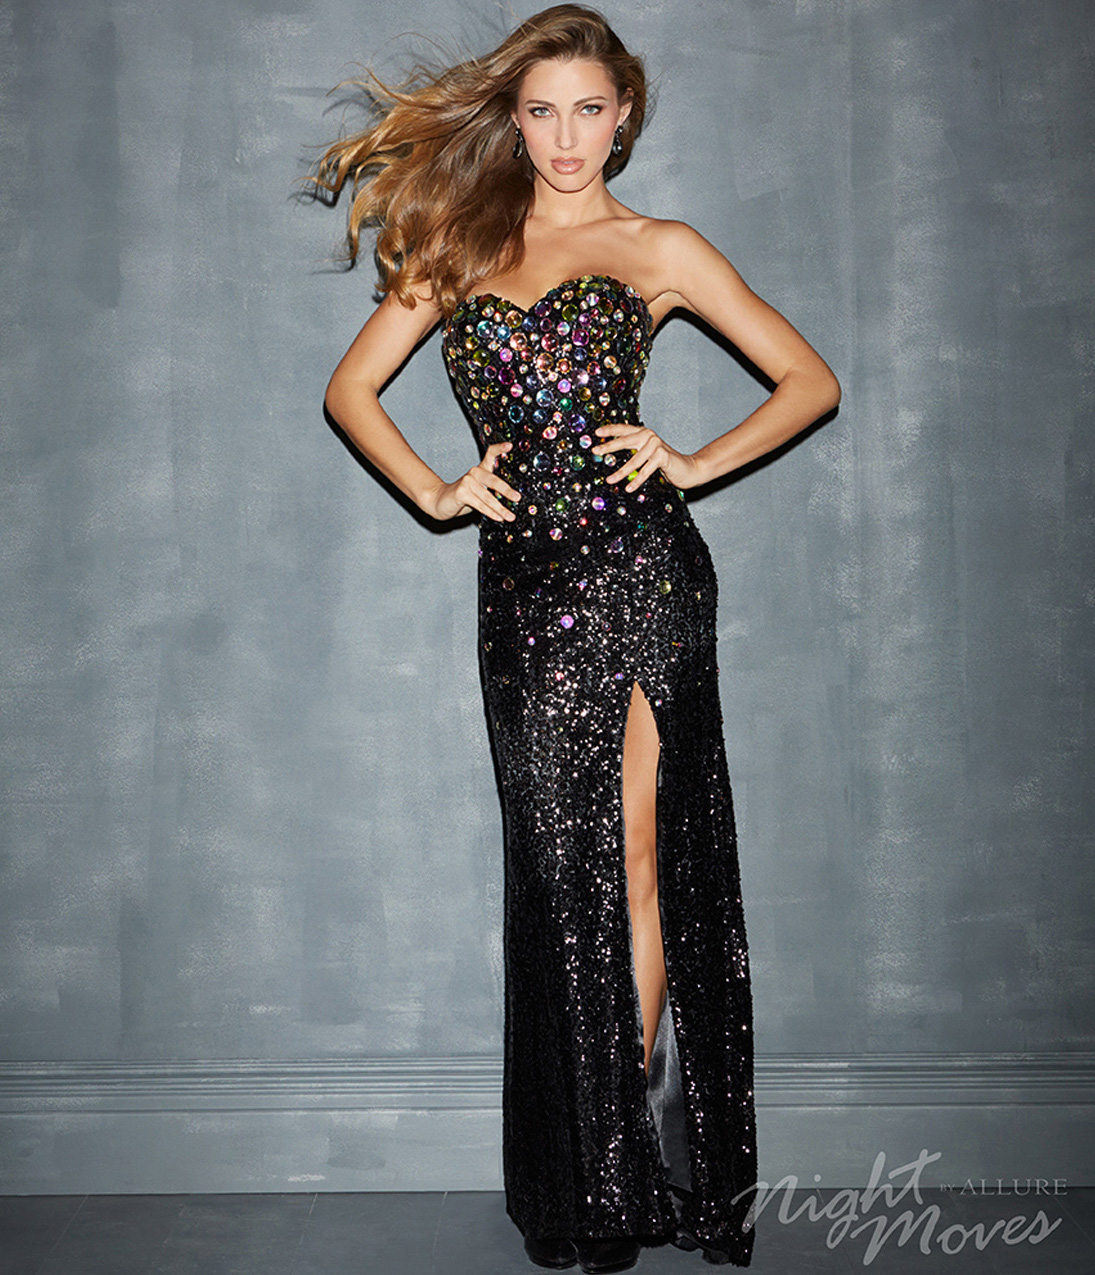 Black Strapless Sequin Dress - New Fashion Collection - Dresses Ask